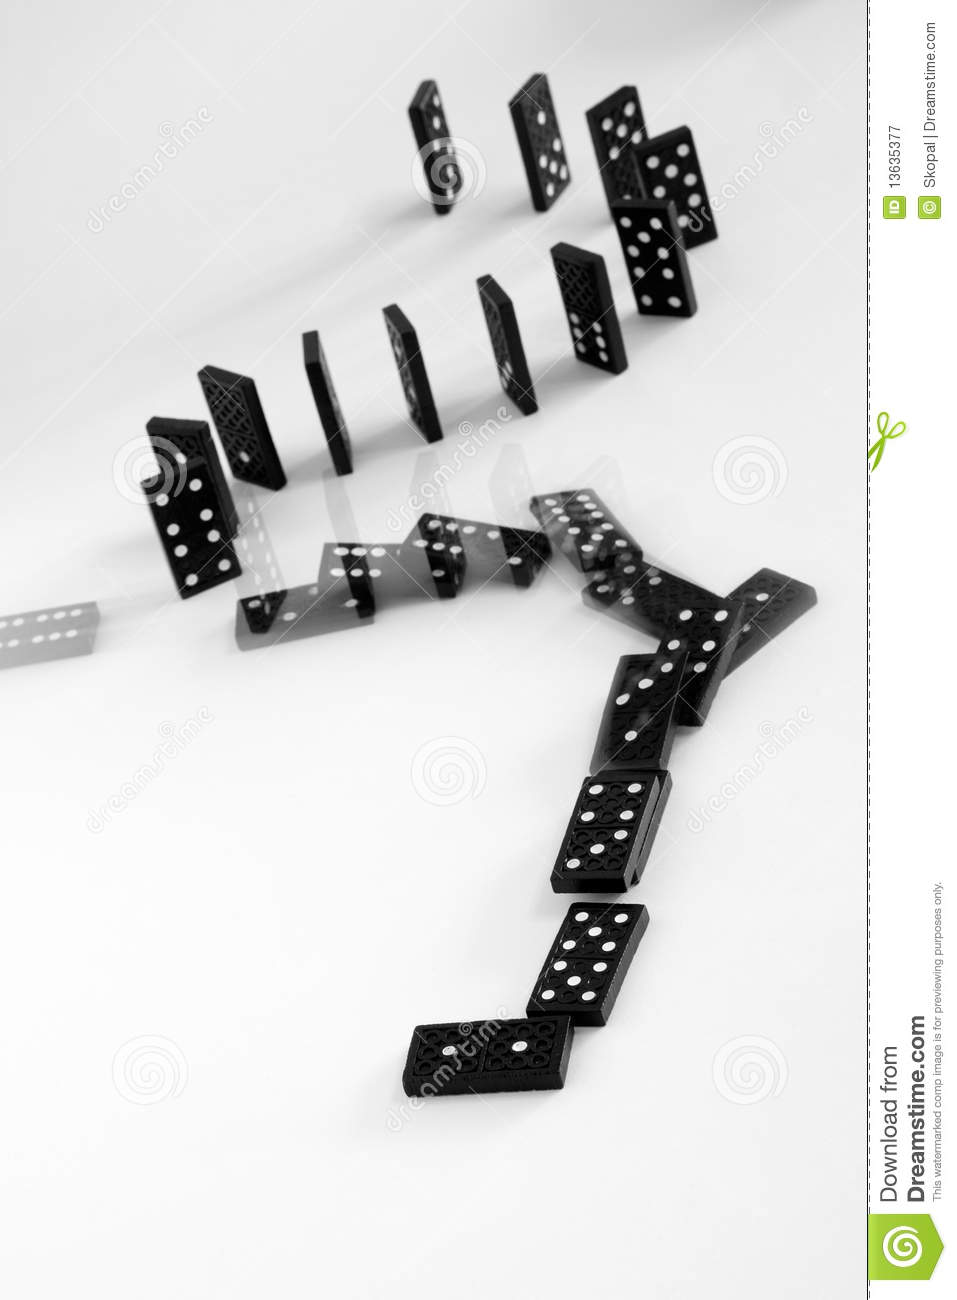 domino effect clipart clipart kid domino effect domino blocks falling